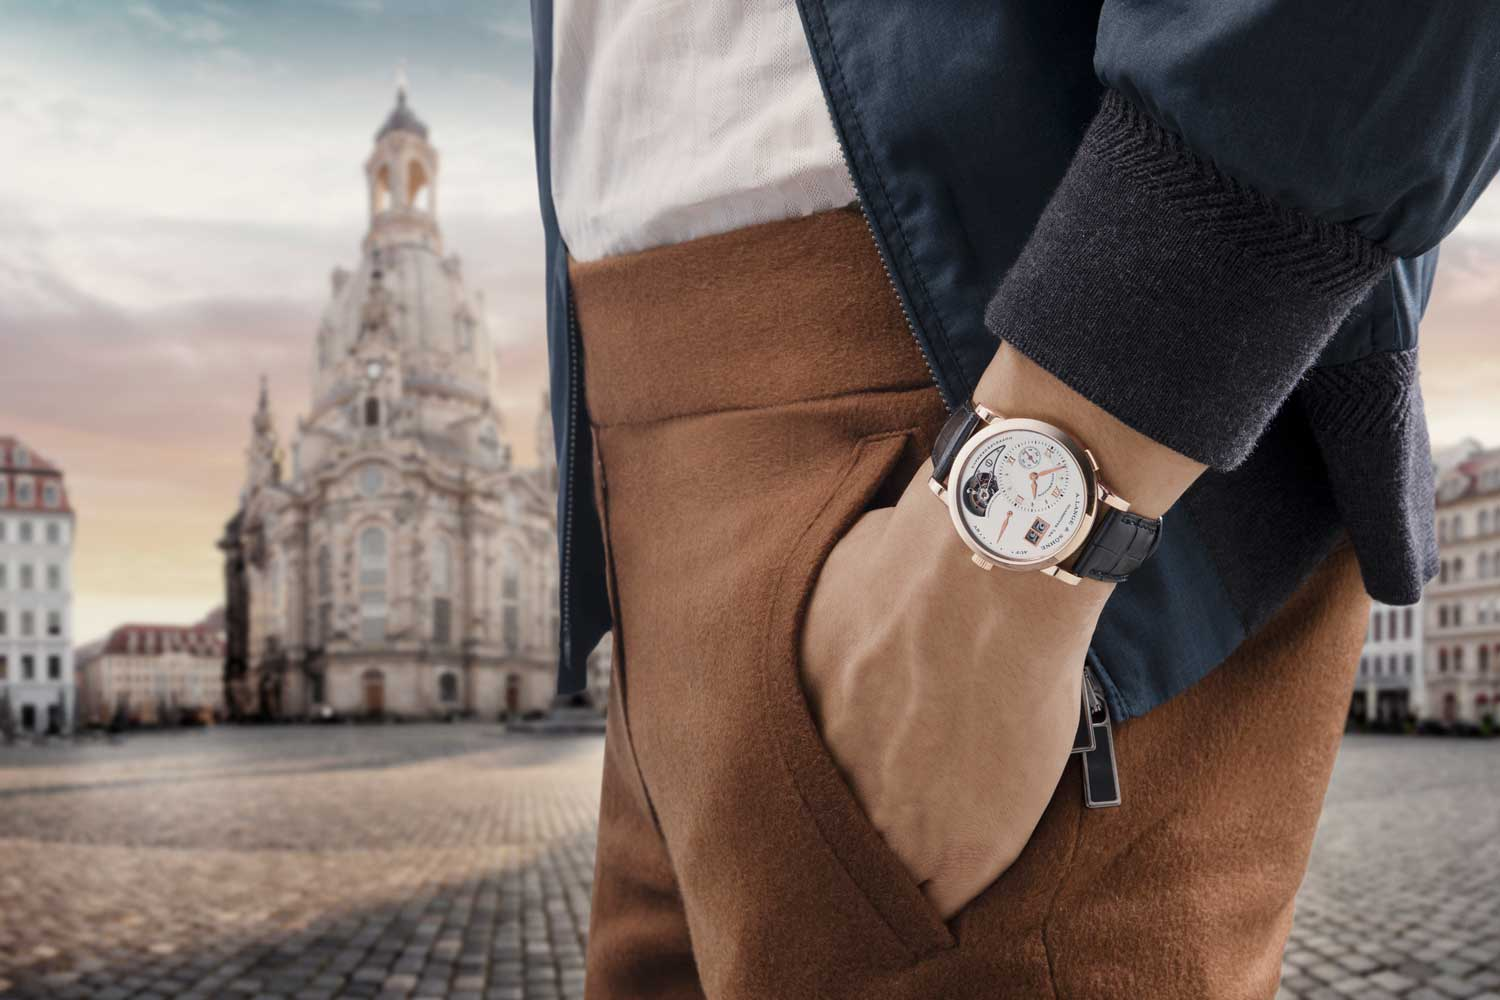 The Lange 1 Tourbillon (reference 704.032 in pink gold) on the Courtyard of Dresden Frauenkirche (Image © Revolution)